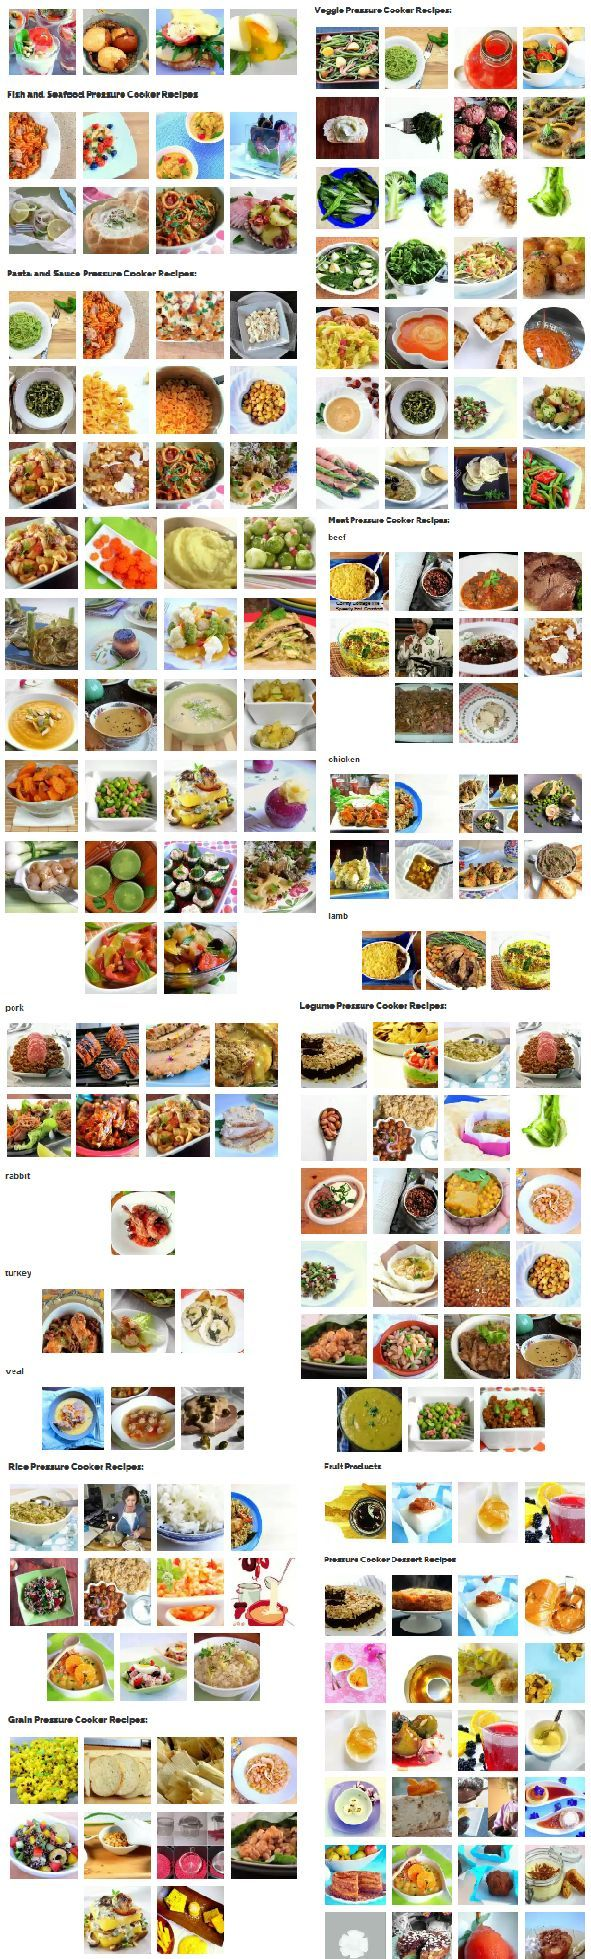 Huge visual recipe archive - you're bound to find inspiration, here!! What will you PRESSURE COOK, today?!?